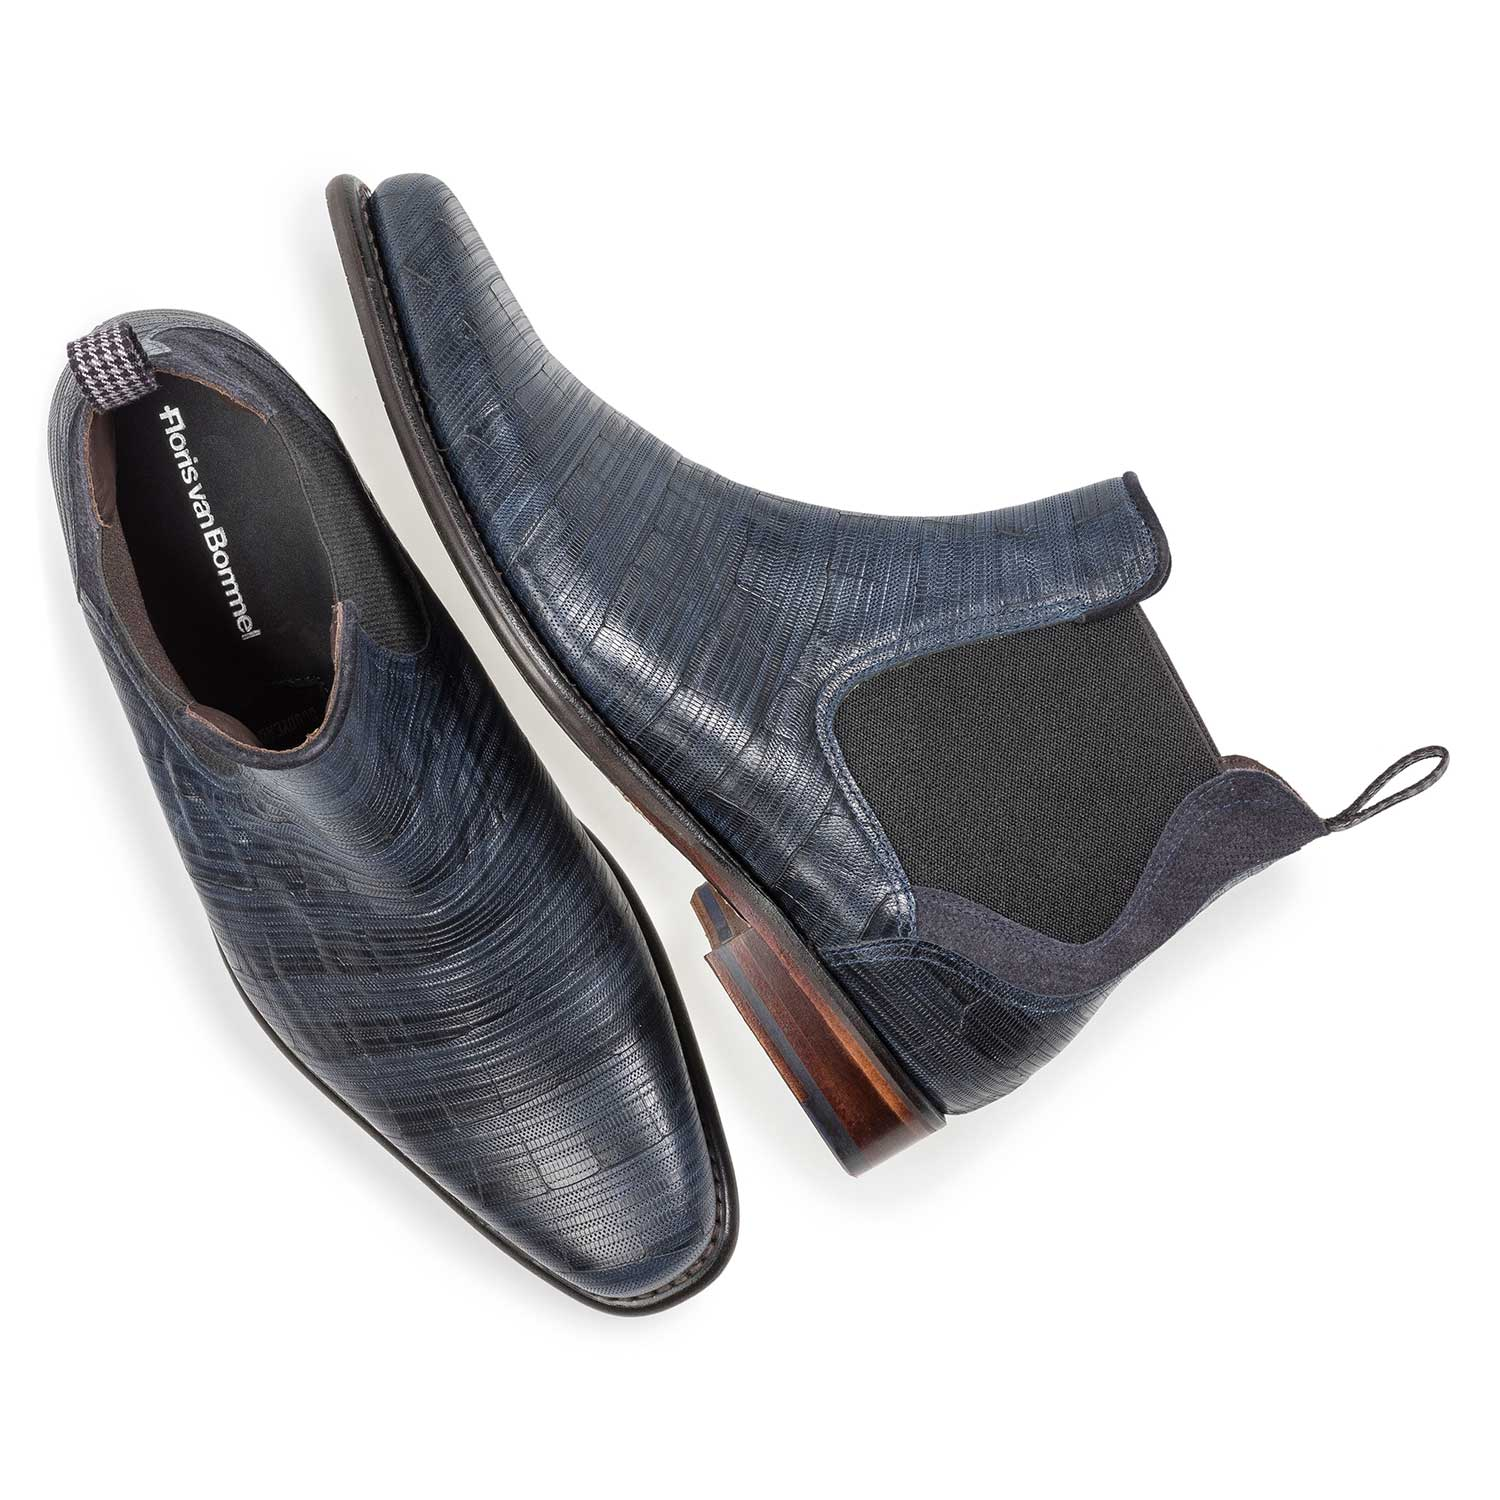 10637/02 - Dark blue leather Chelsea boot with print